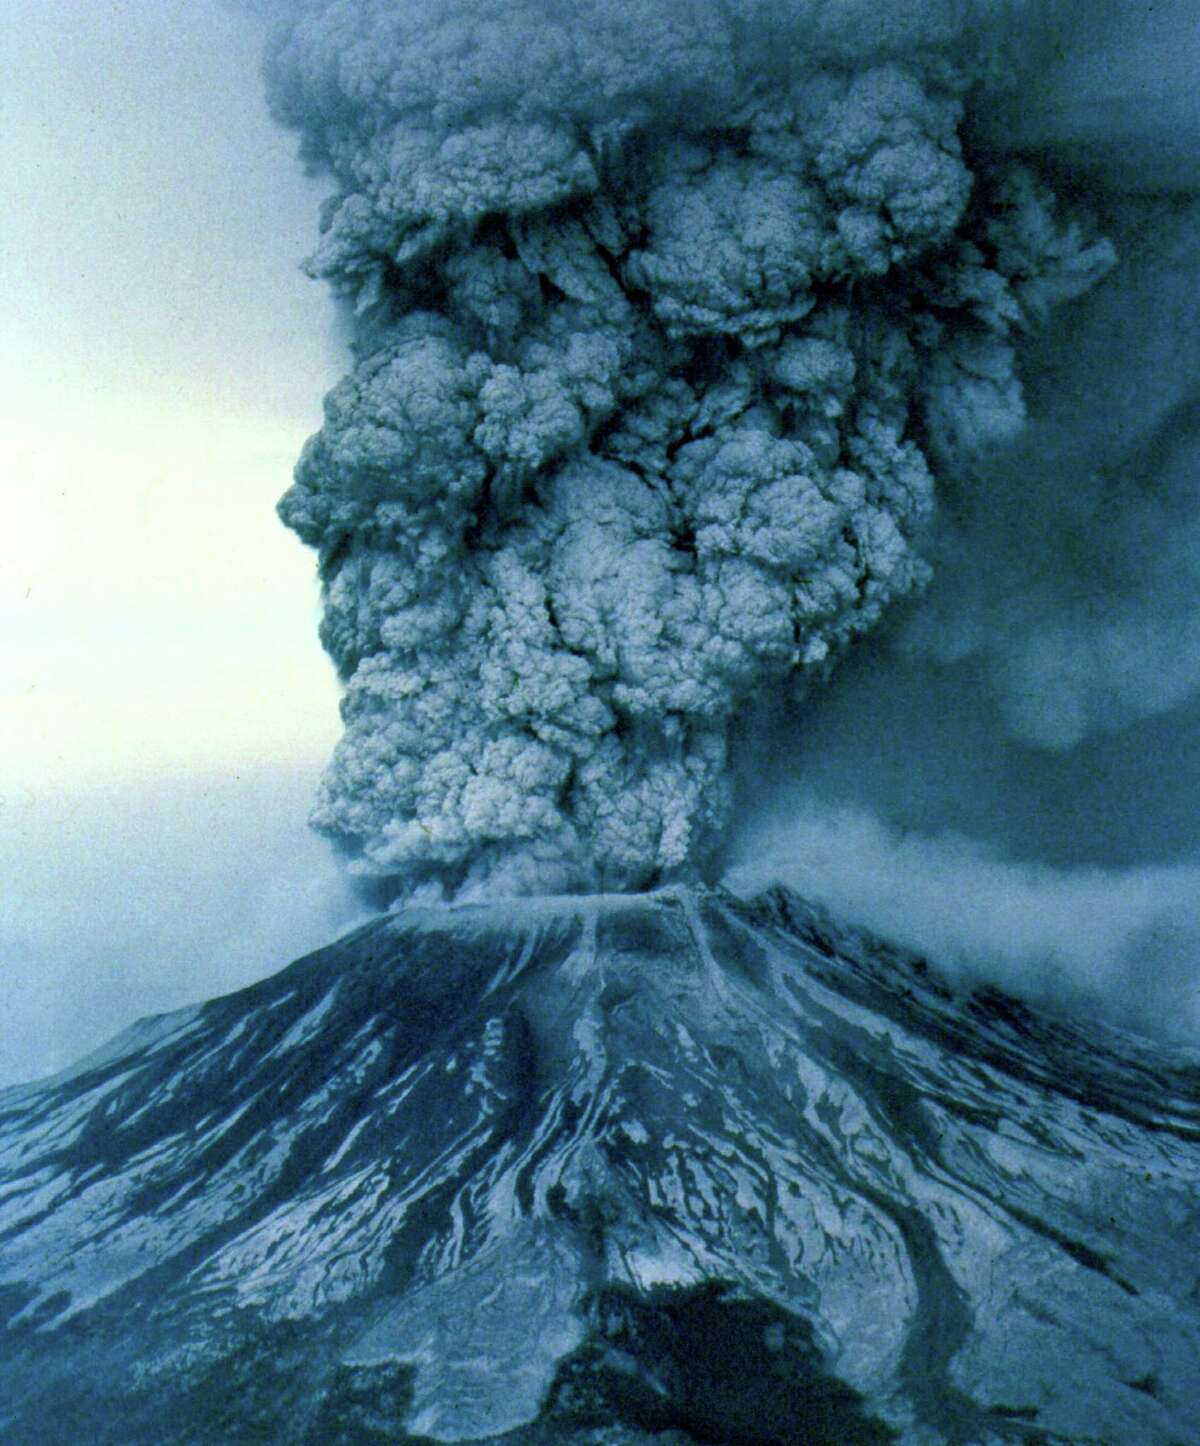 May 18, 1980: Mount St. Helens erupted causing wide spread damage and sent ash thousands of feet into the air.